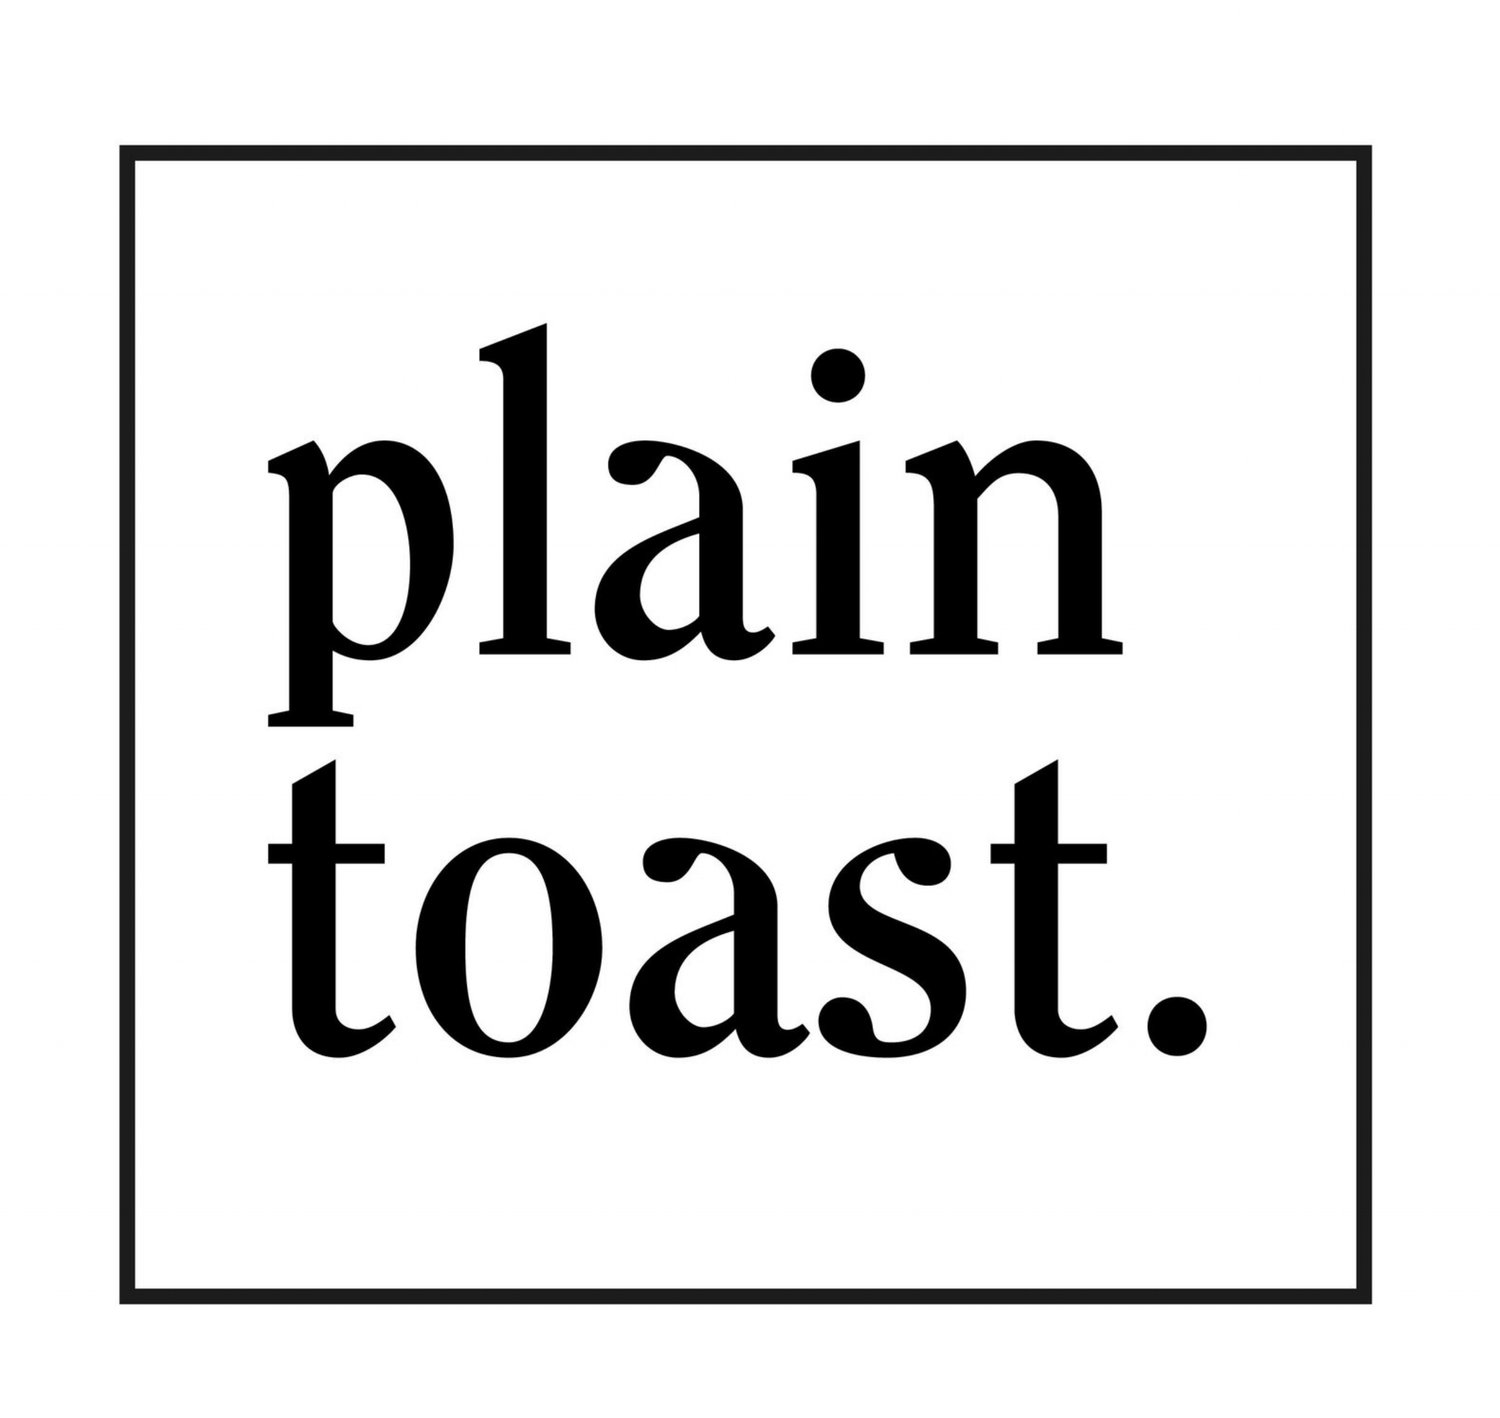 Plain Toast - intention jewellery to soothe the soul